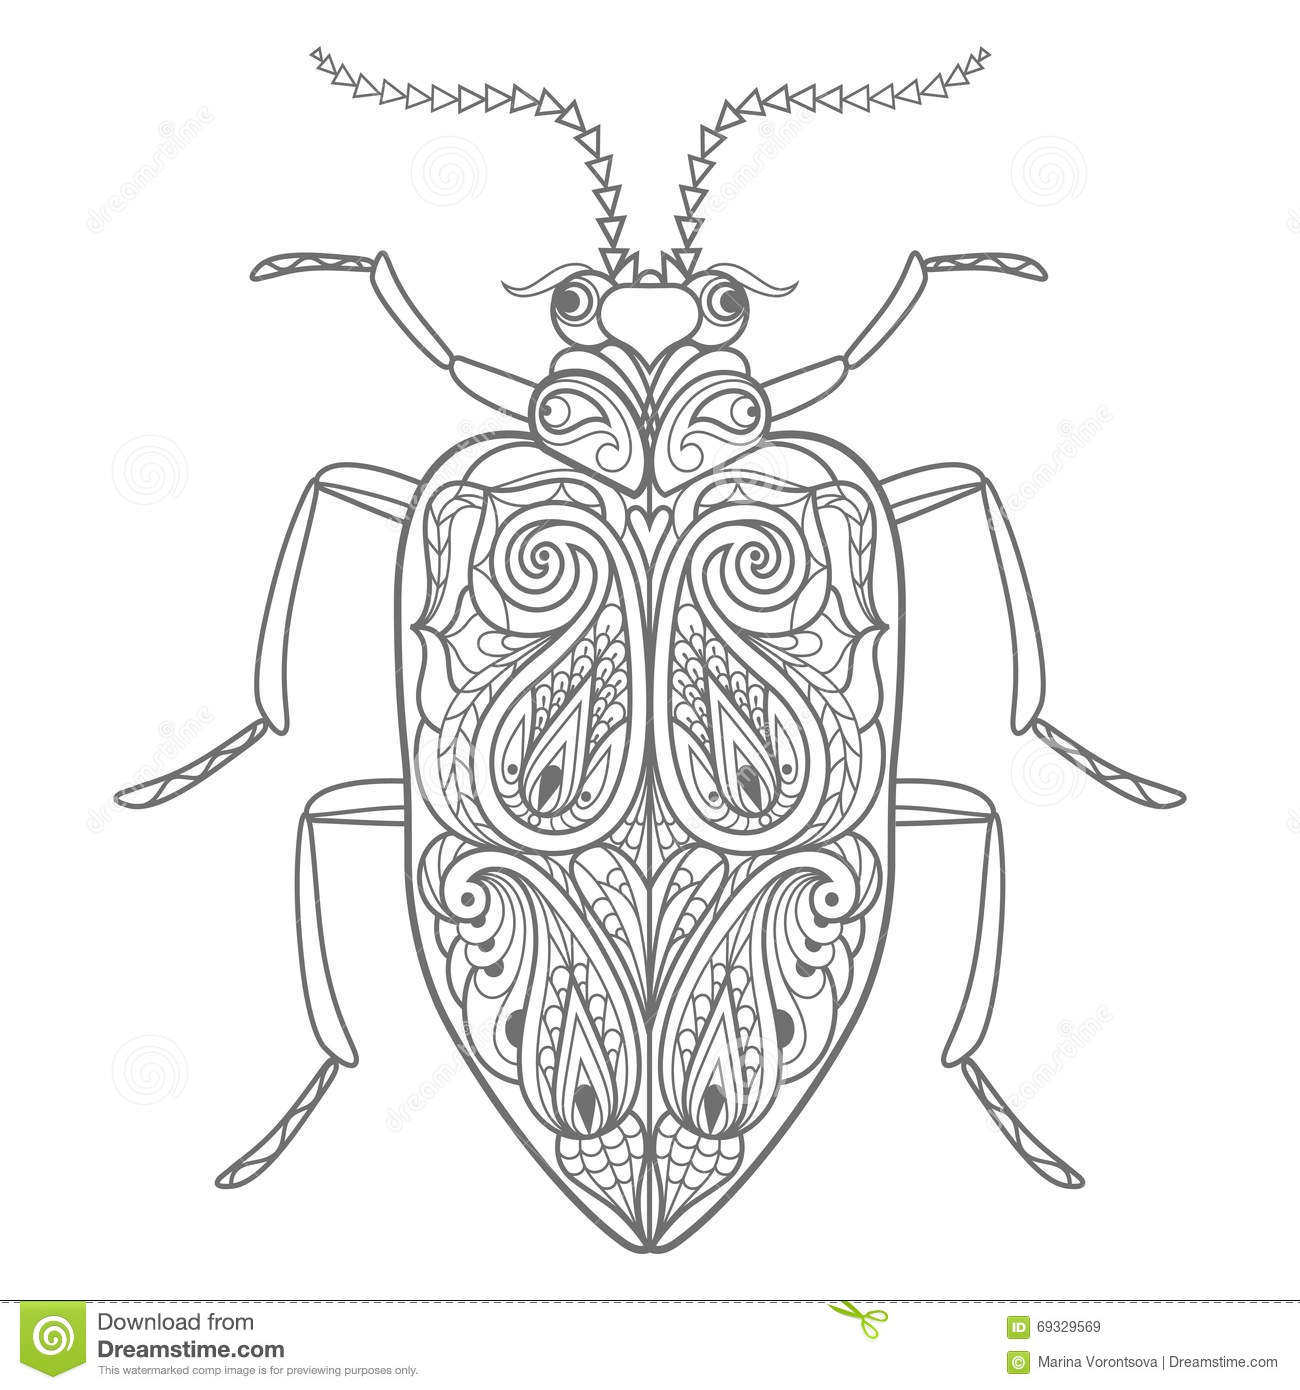 Decorative beetle. stock vector. Illustration of drawing